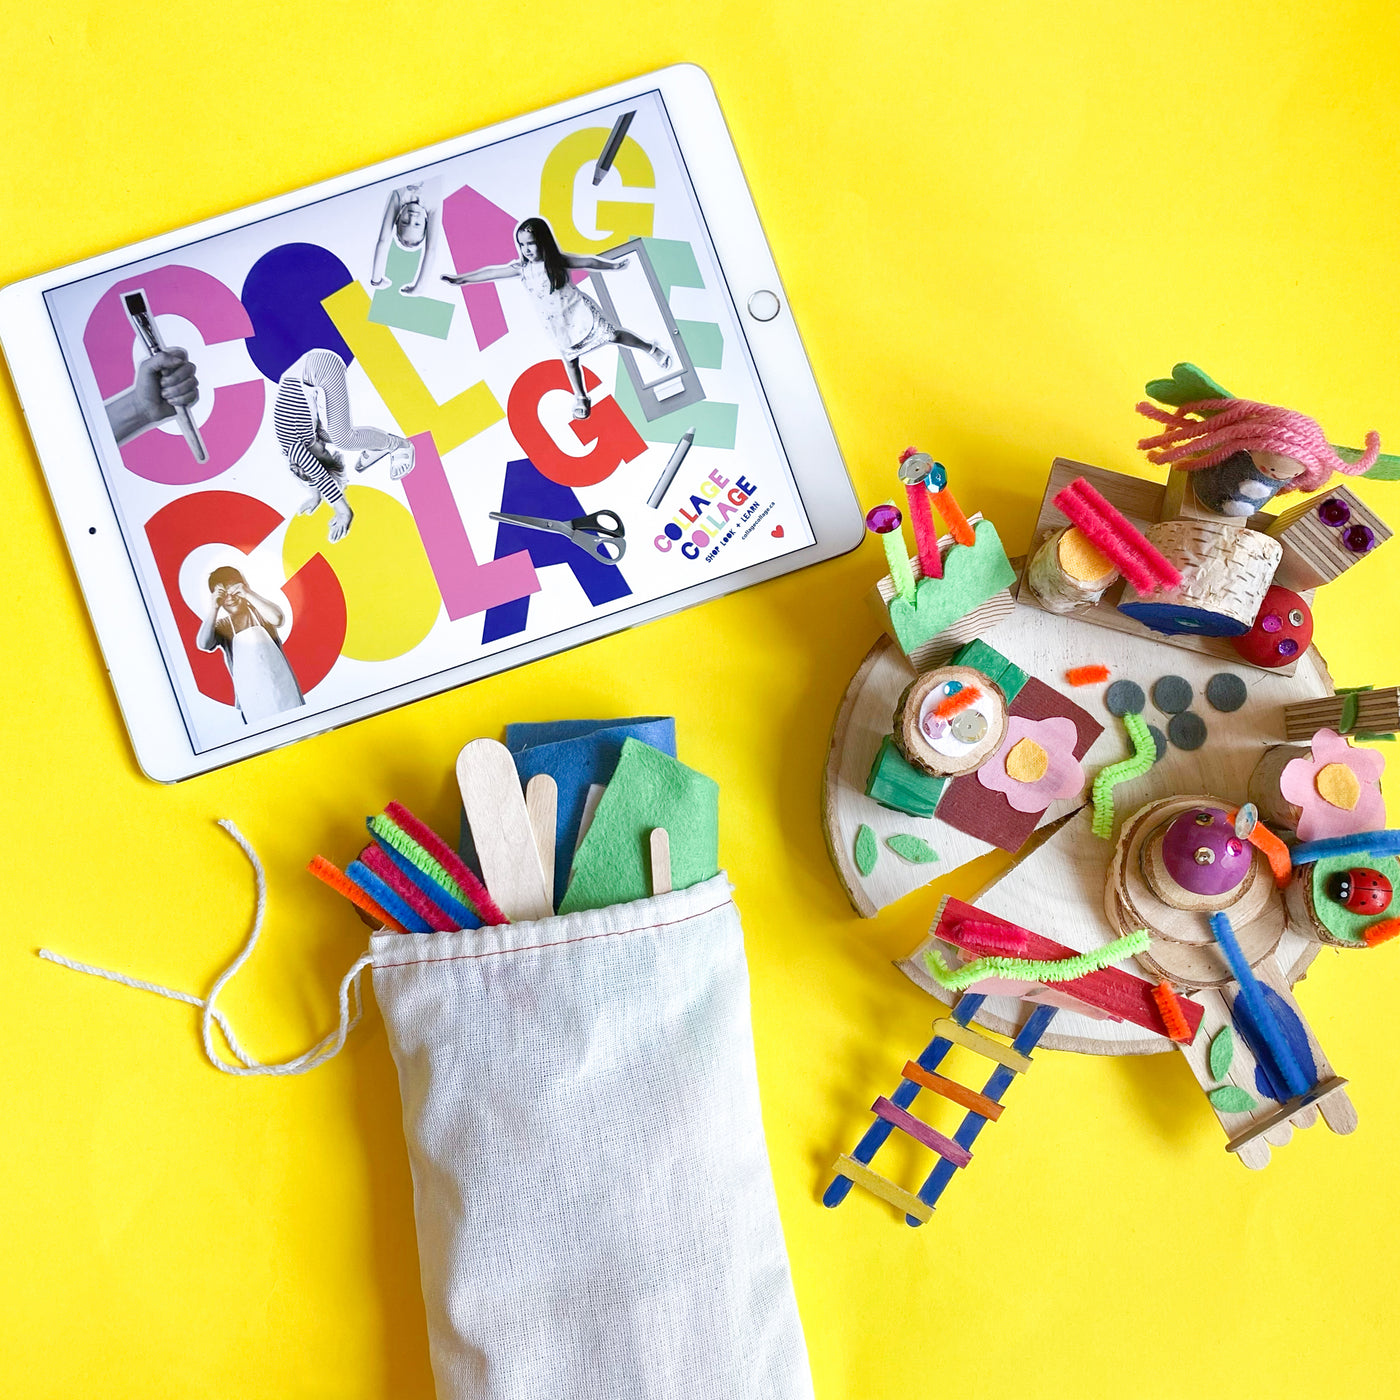 Online Art Camp for Kids with a weeks worth of creative art projects